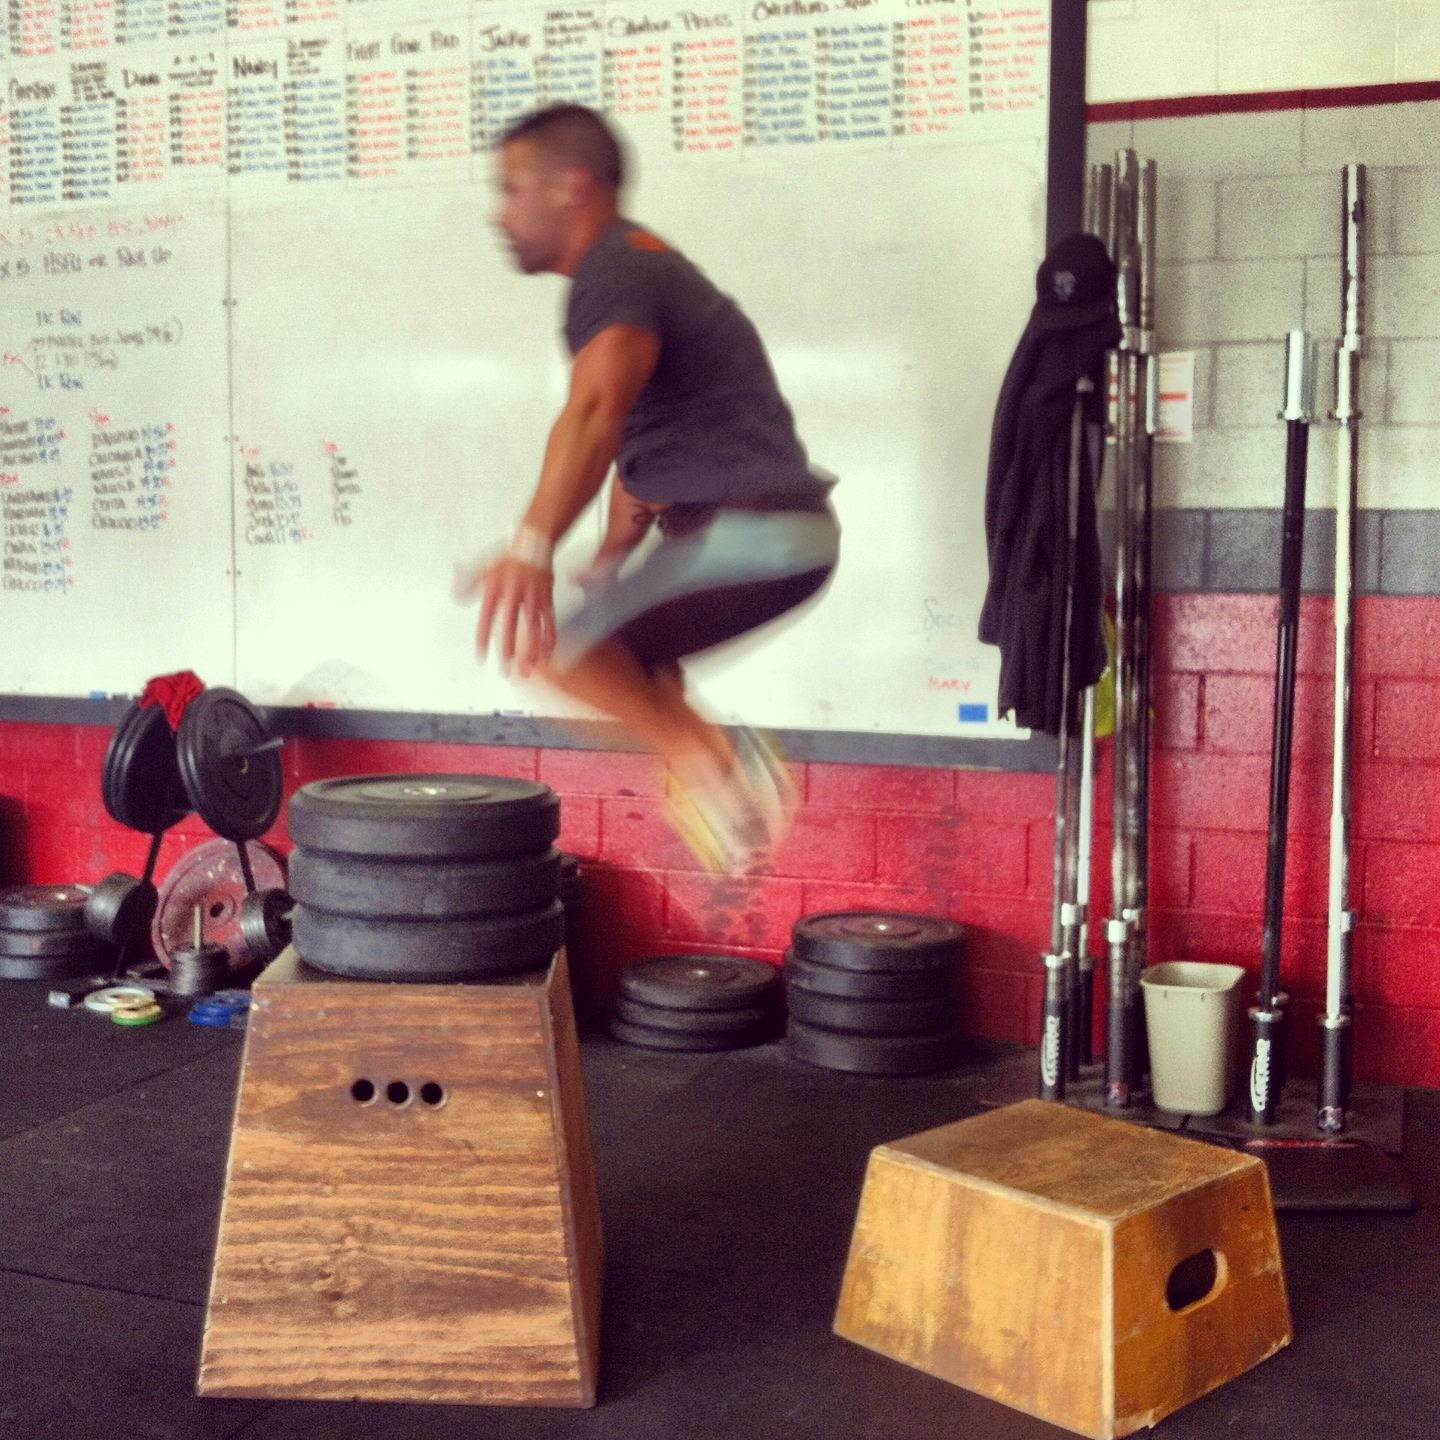 Tim was looking smooth today on those seated box jumps!